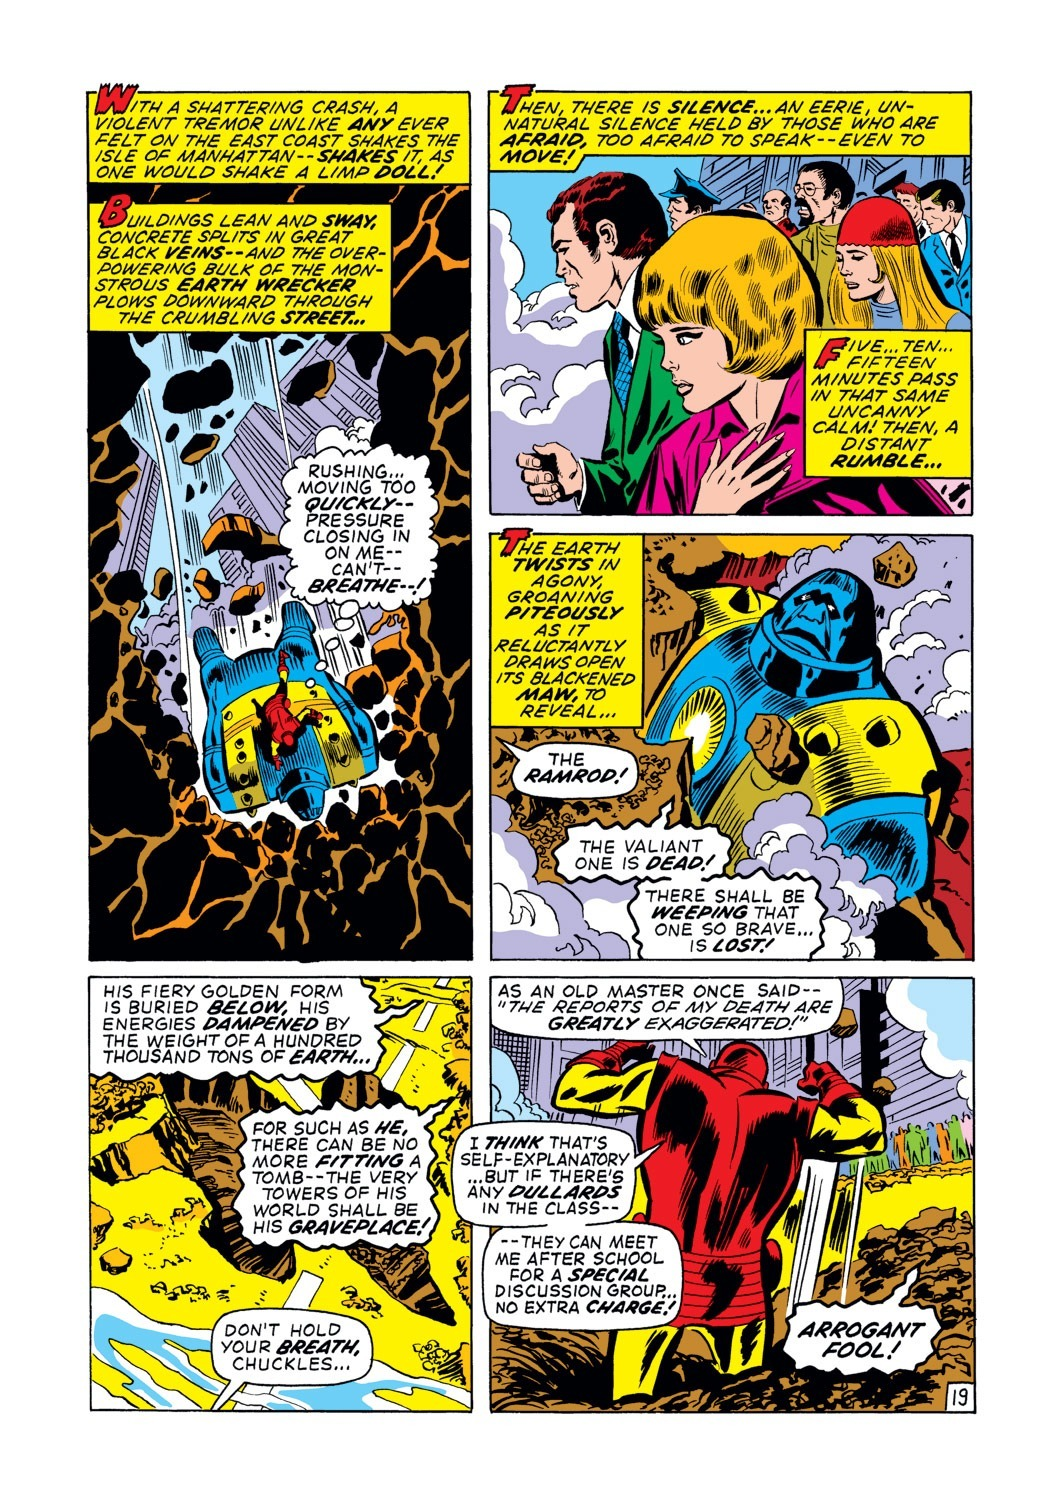 Tanked getting slammed deep into the Earth by Ramrod(who was implied to be a planetary threat multiple times) which also shakes the Earth -Iron Man(1963) #36